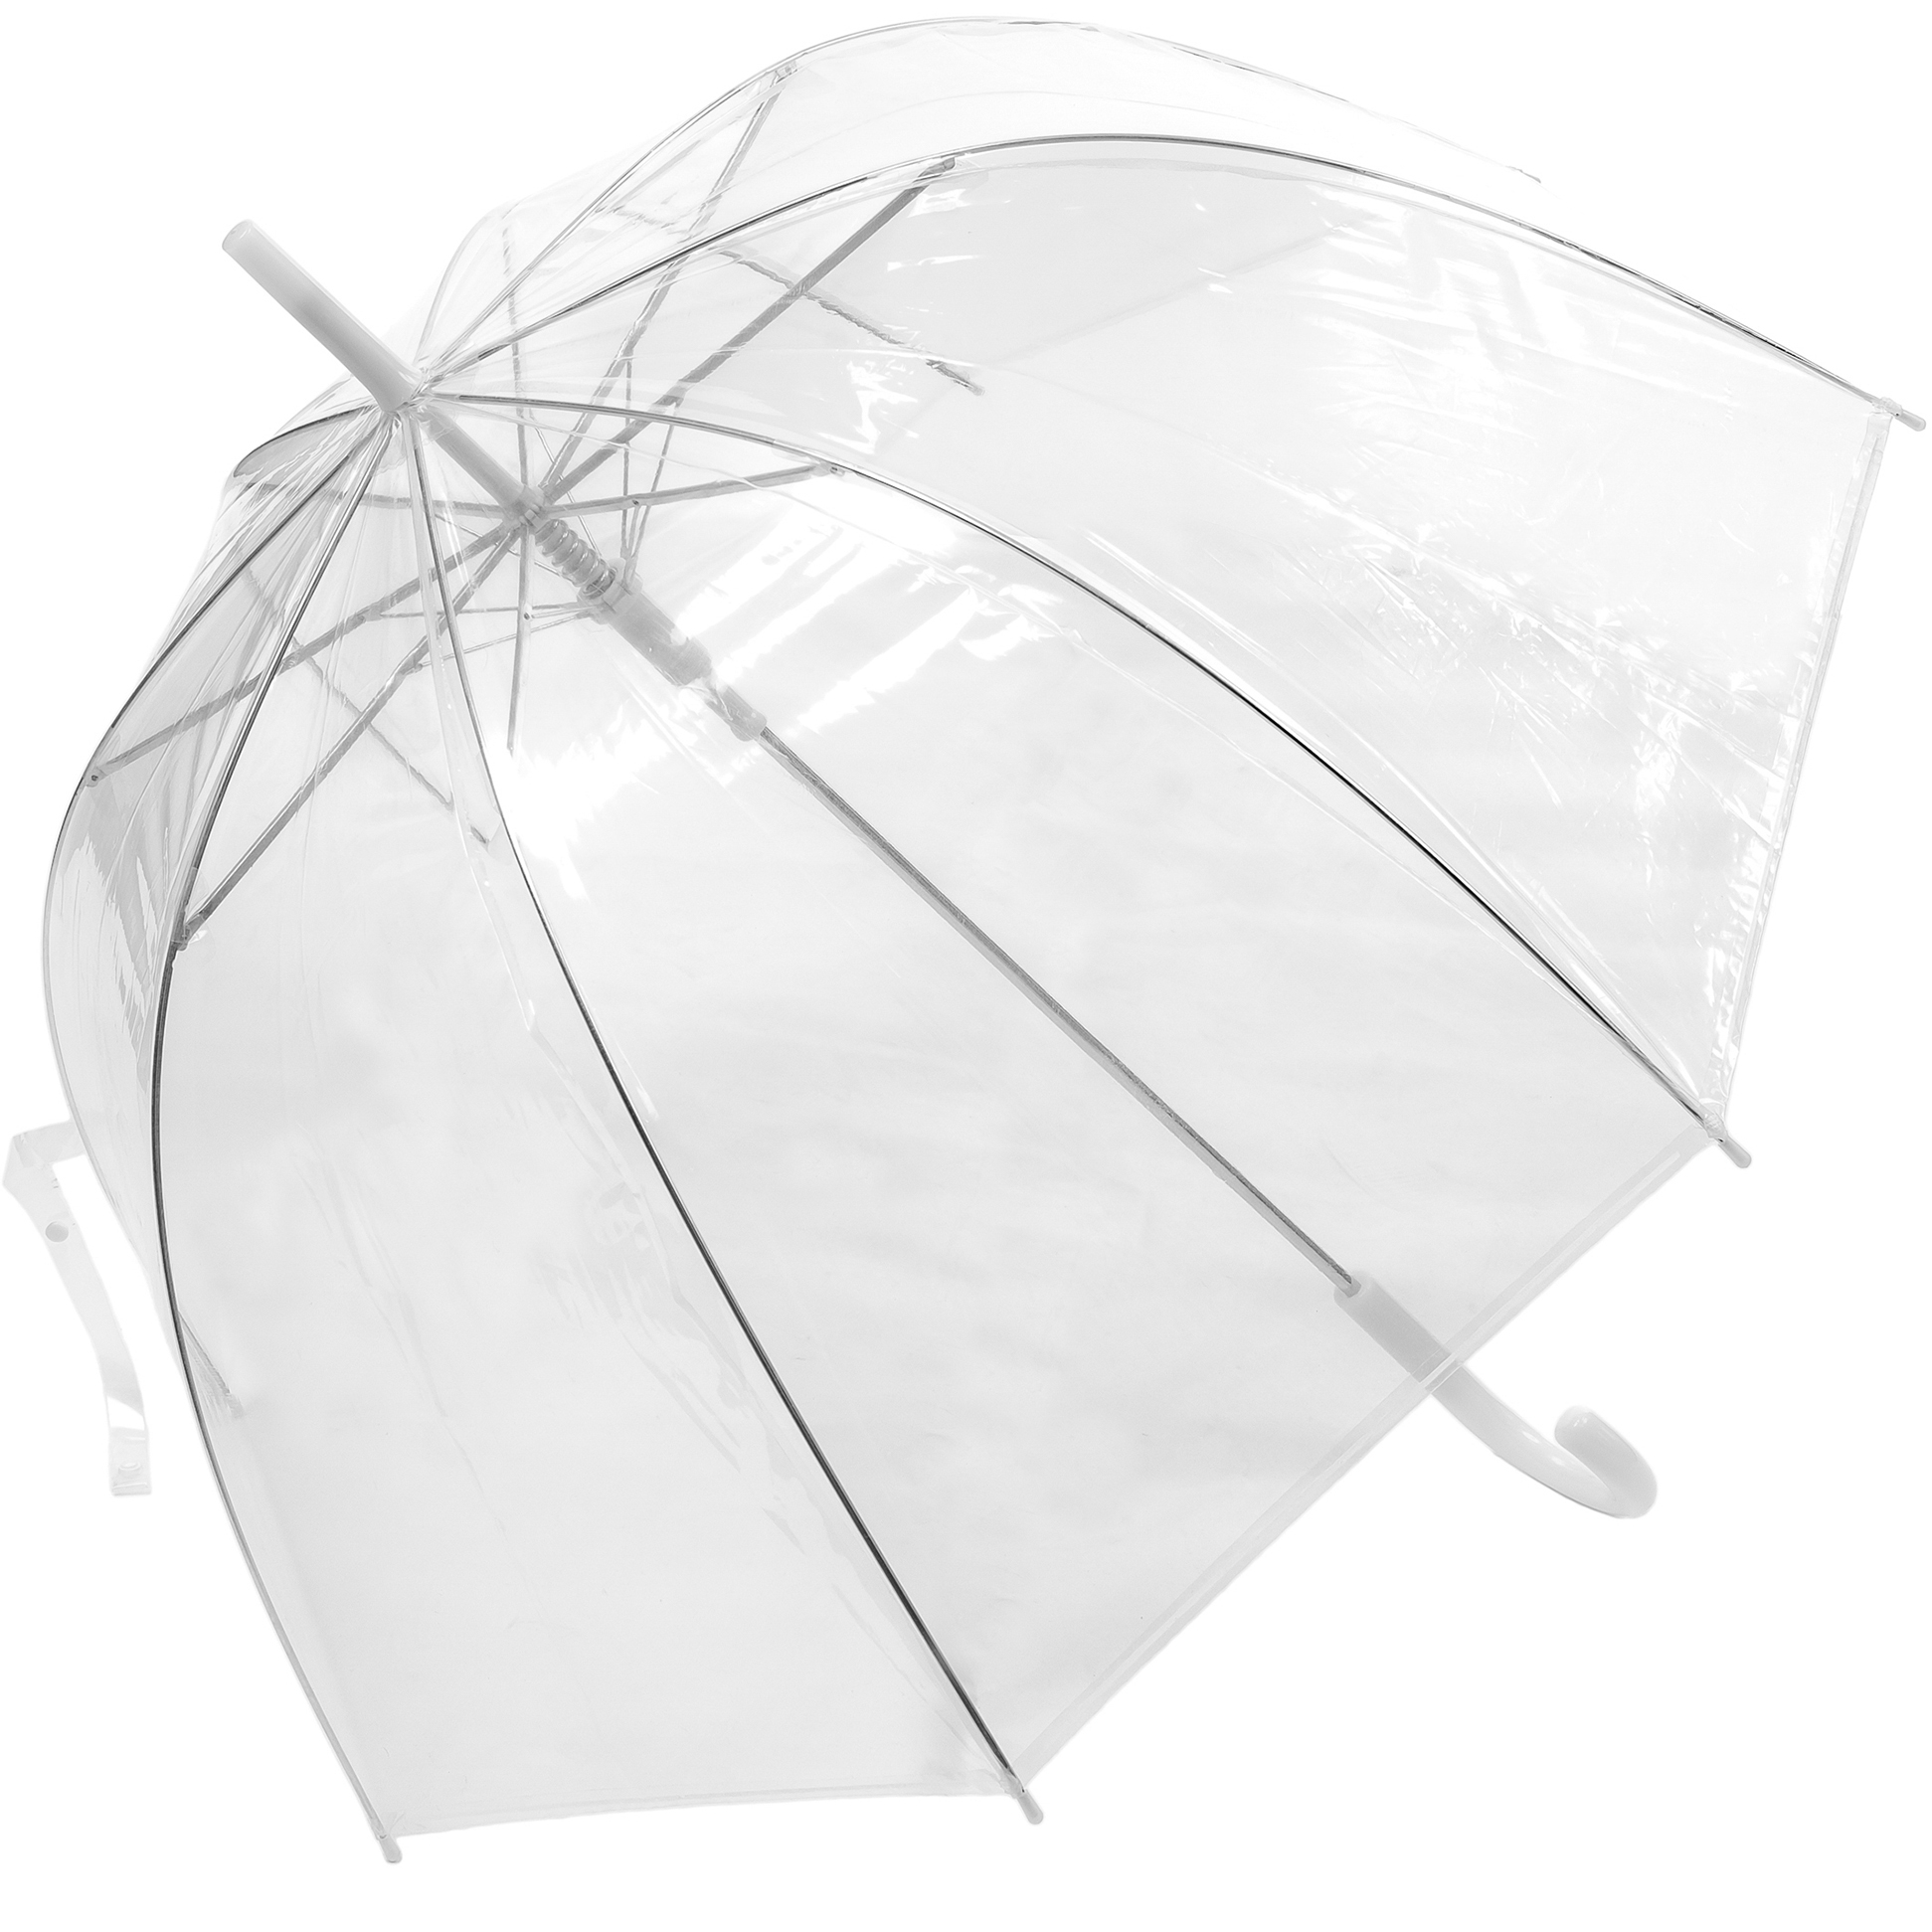 See Through Dome Umbrella (3476)